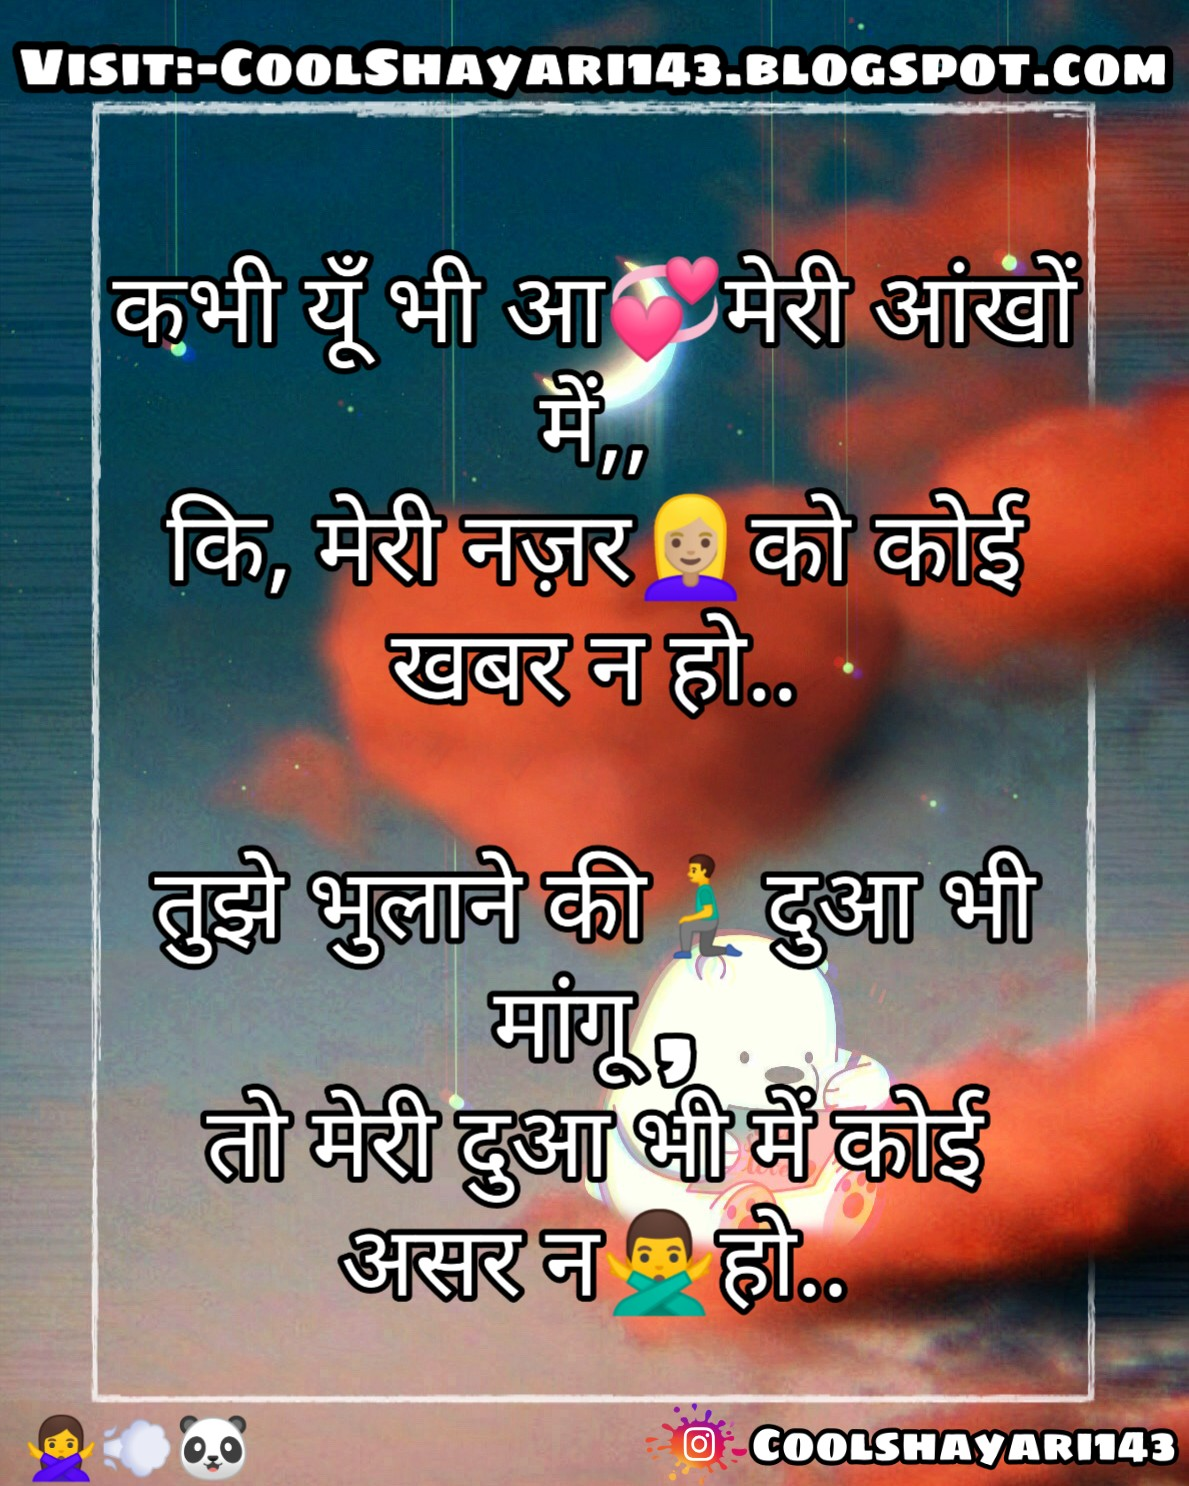 Quotes hindi for and love 2021 best dating in her 101+ Romantic